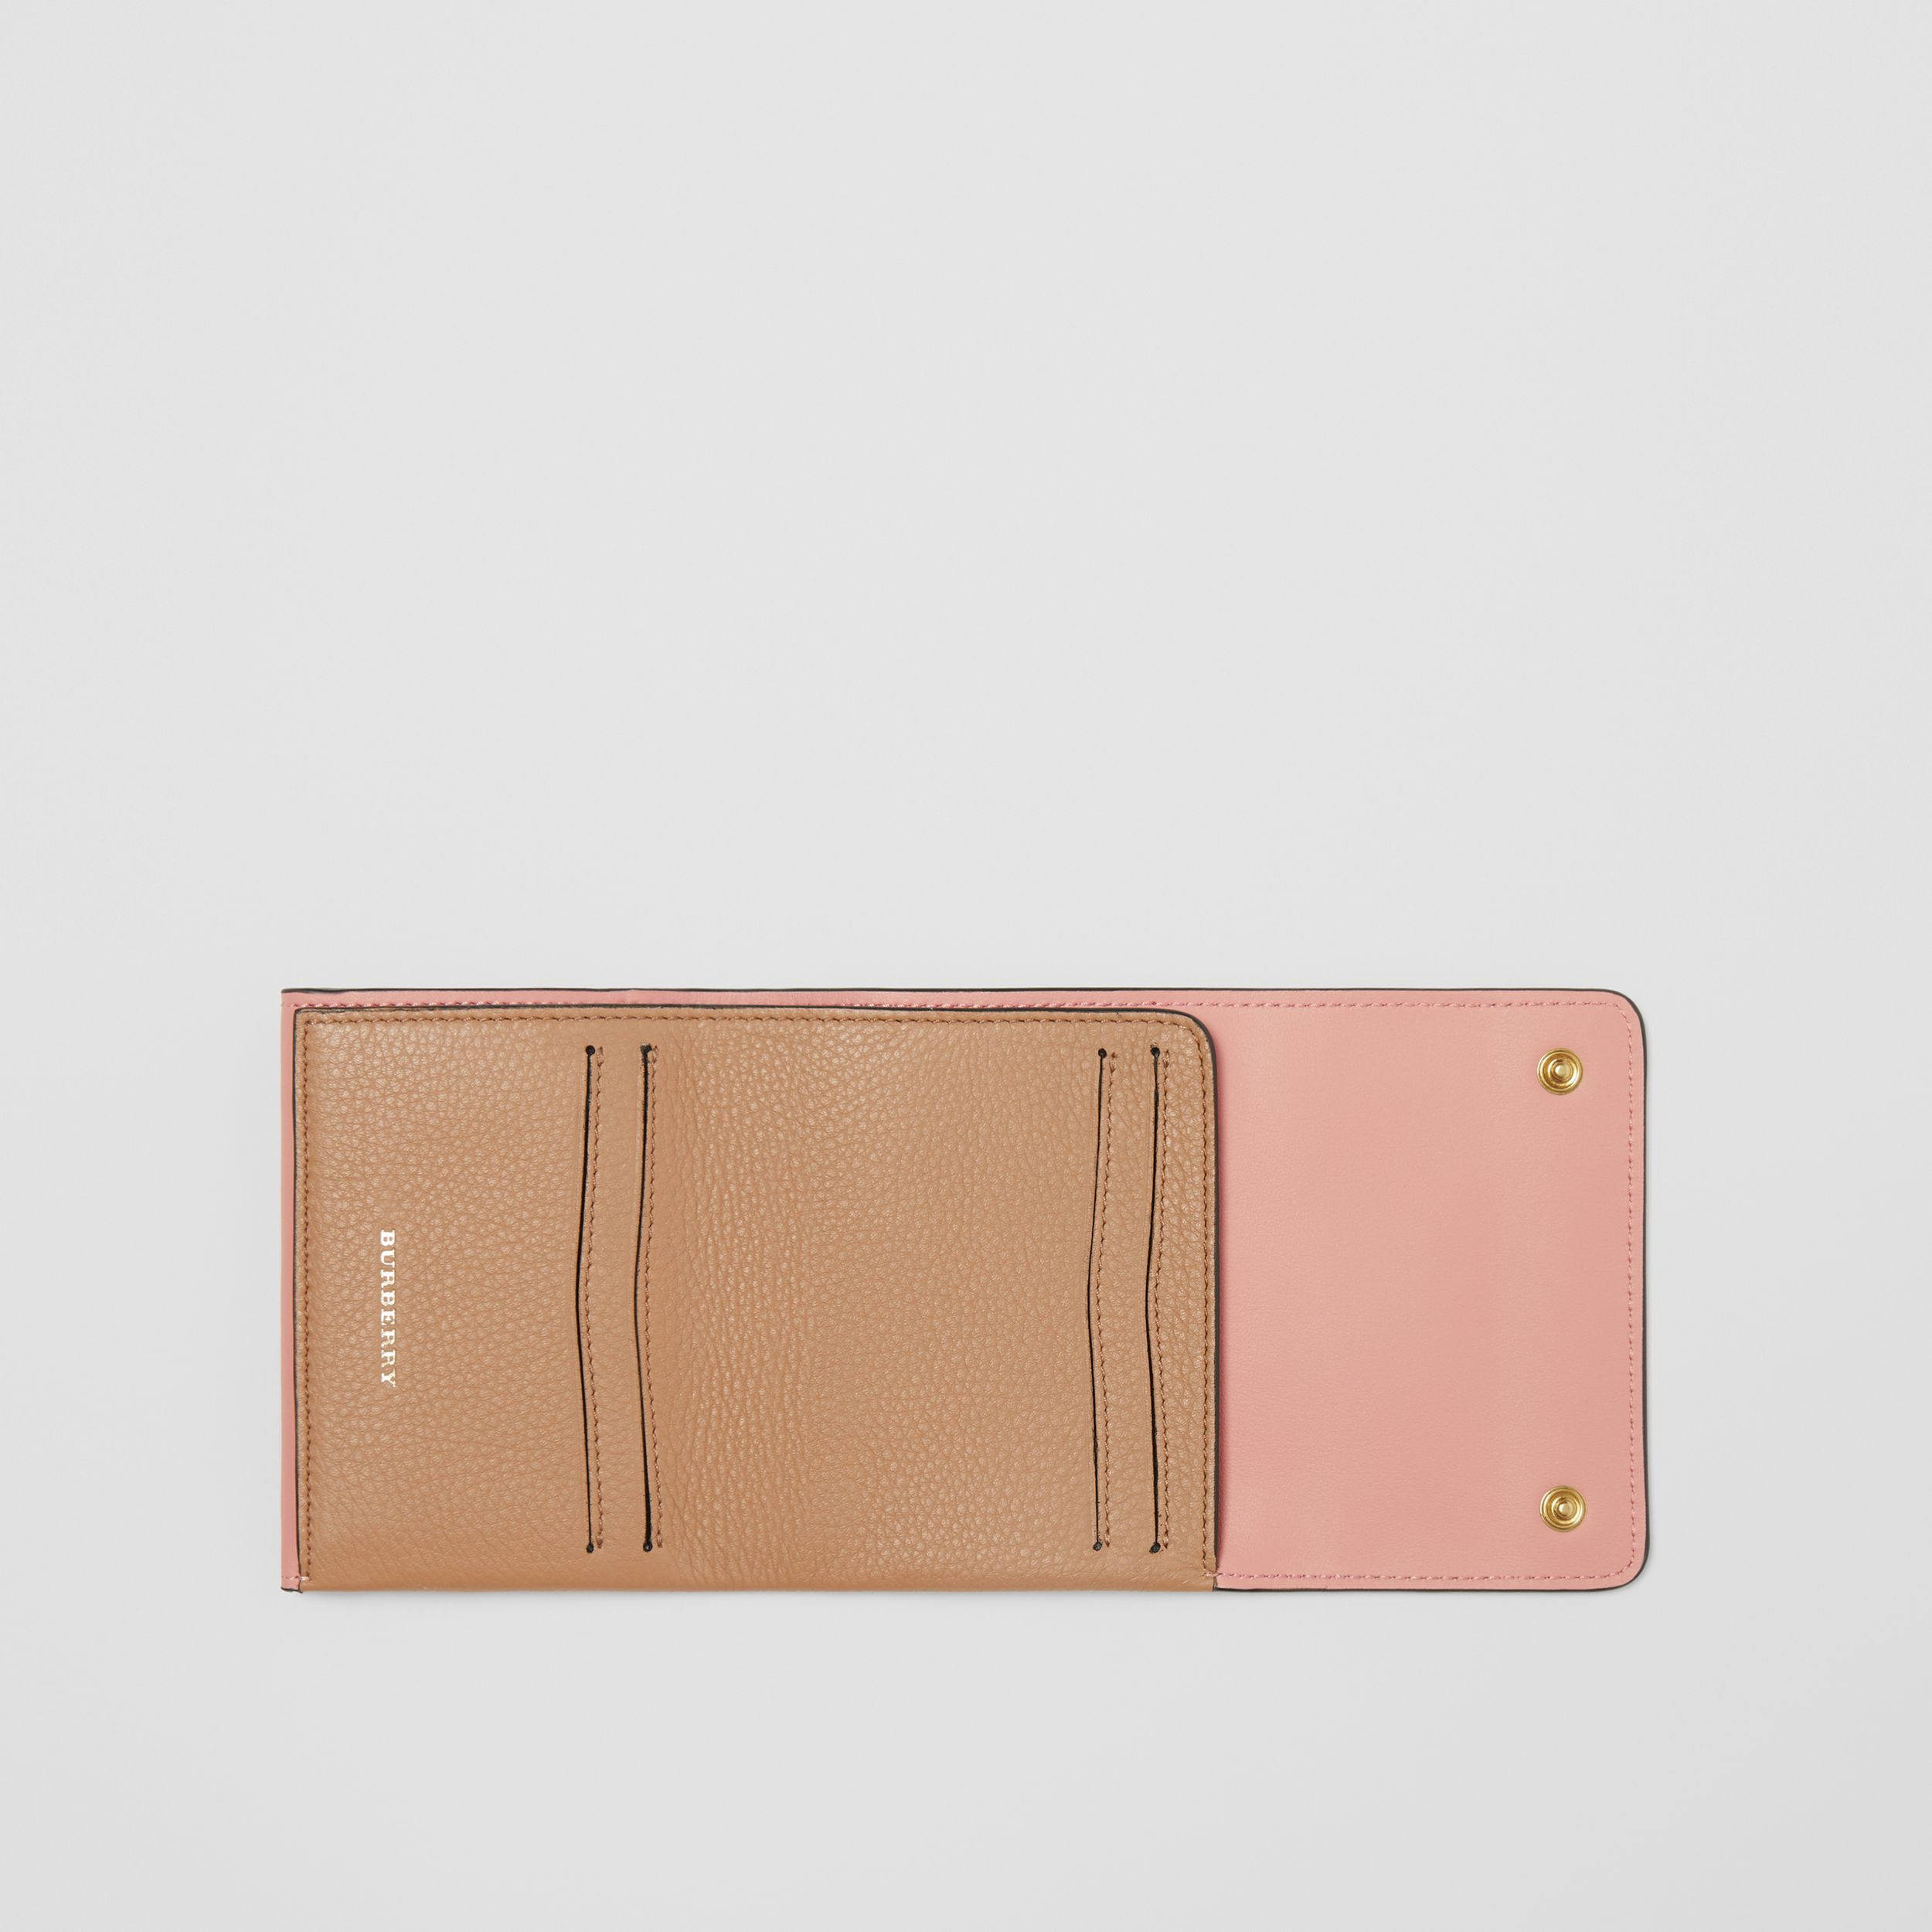 Small Leather Folding Wallet in Light Camel - Women | Burberry United States - 4